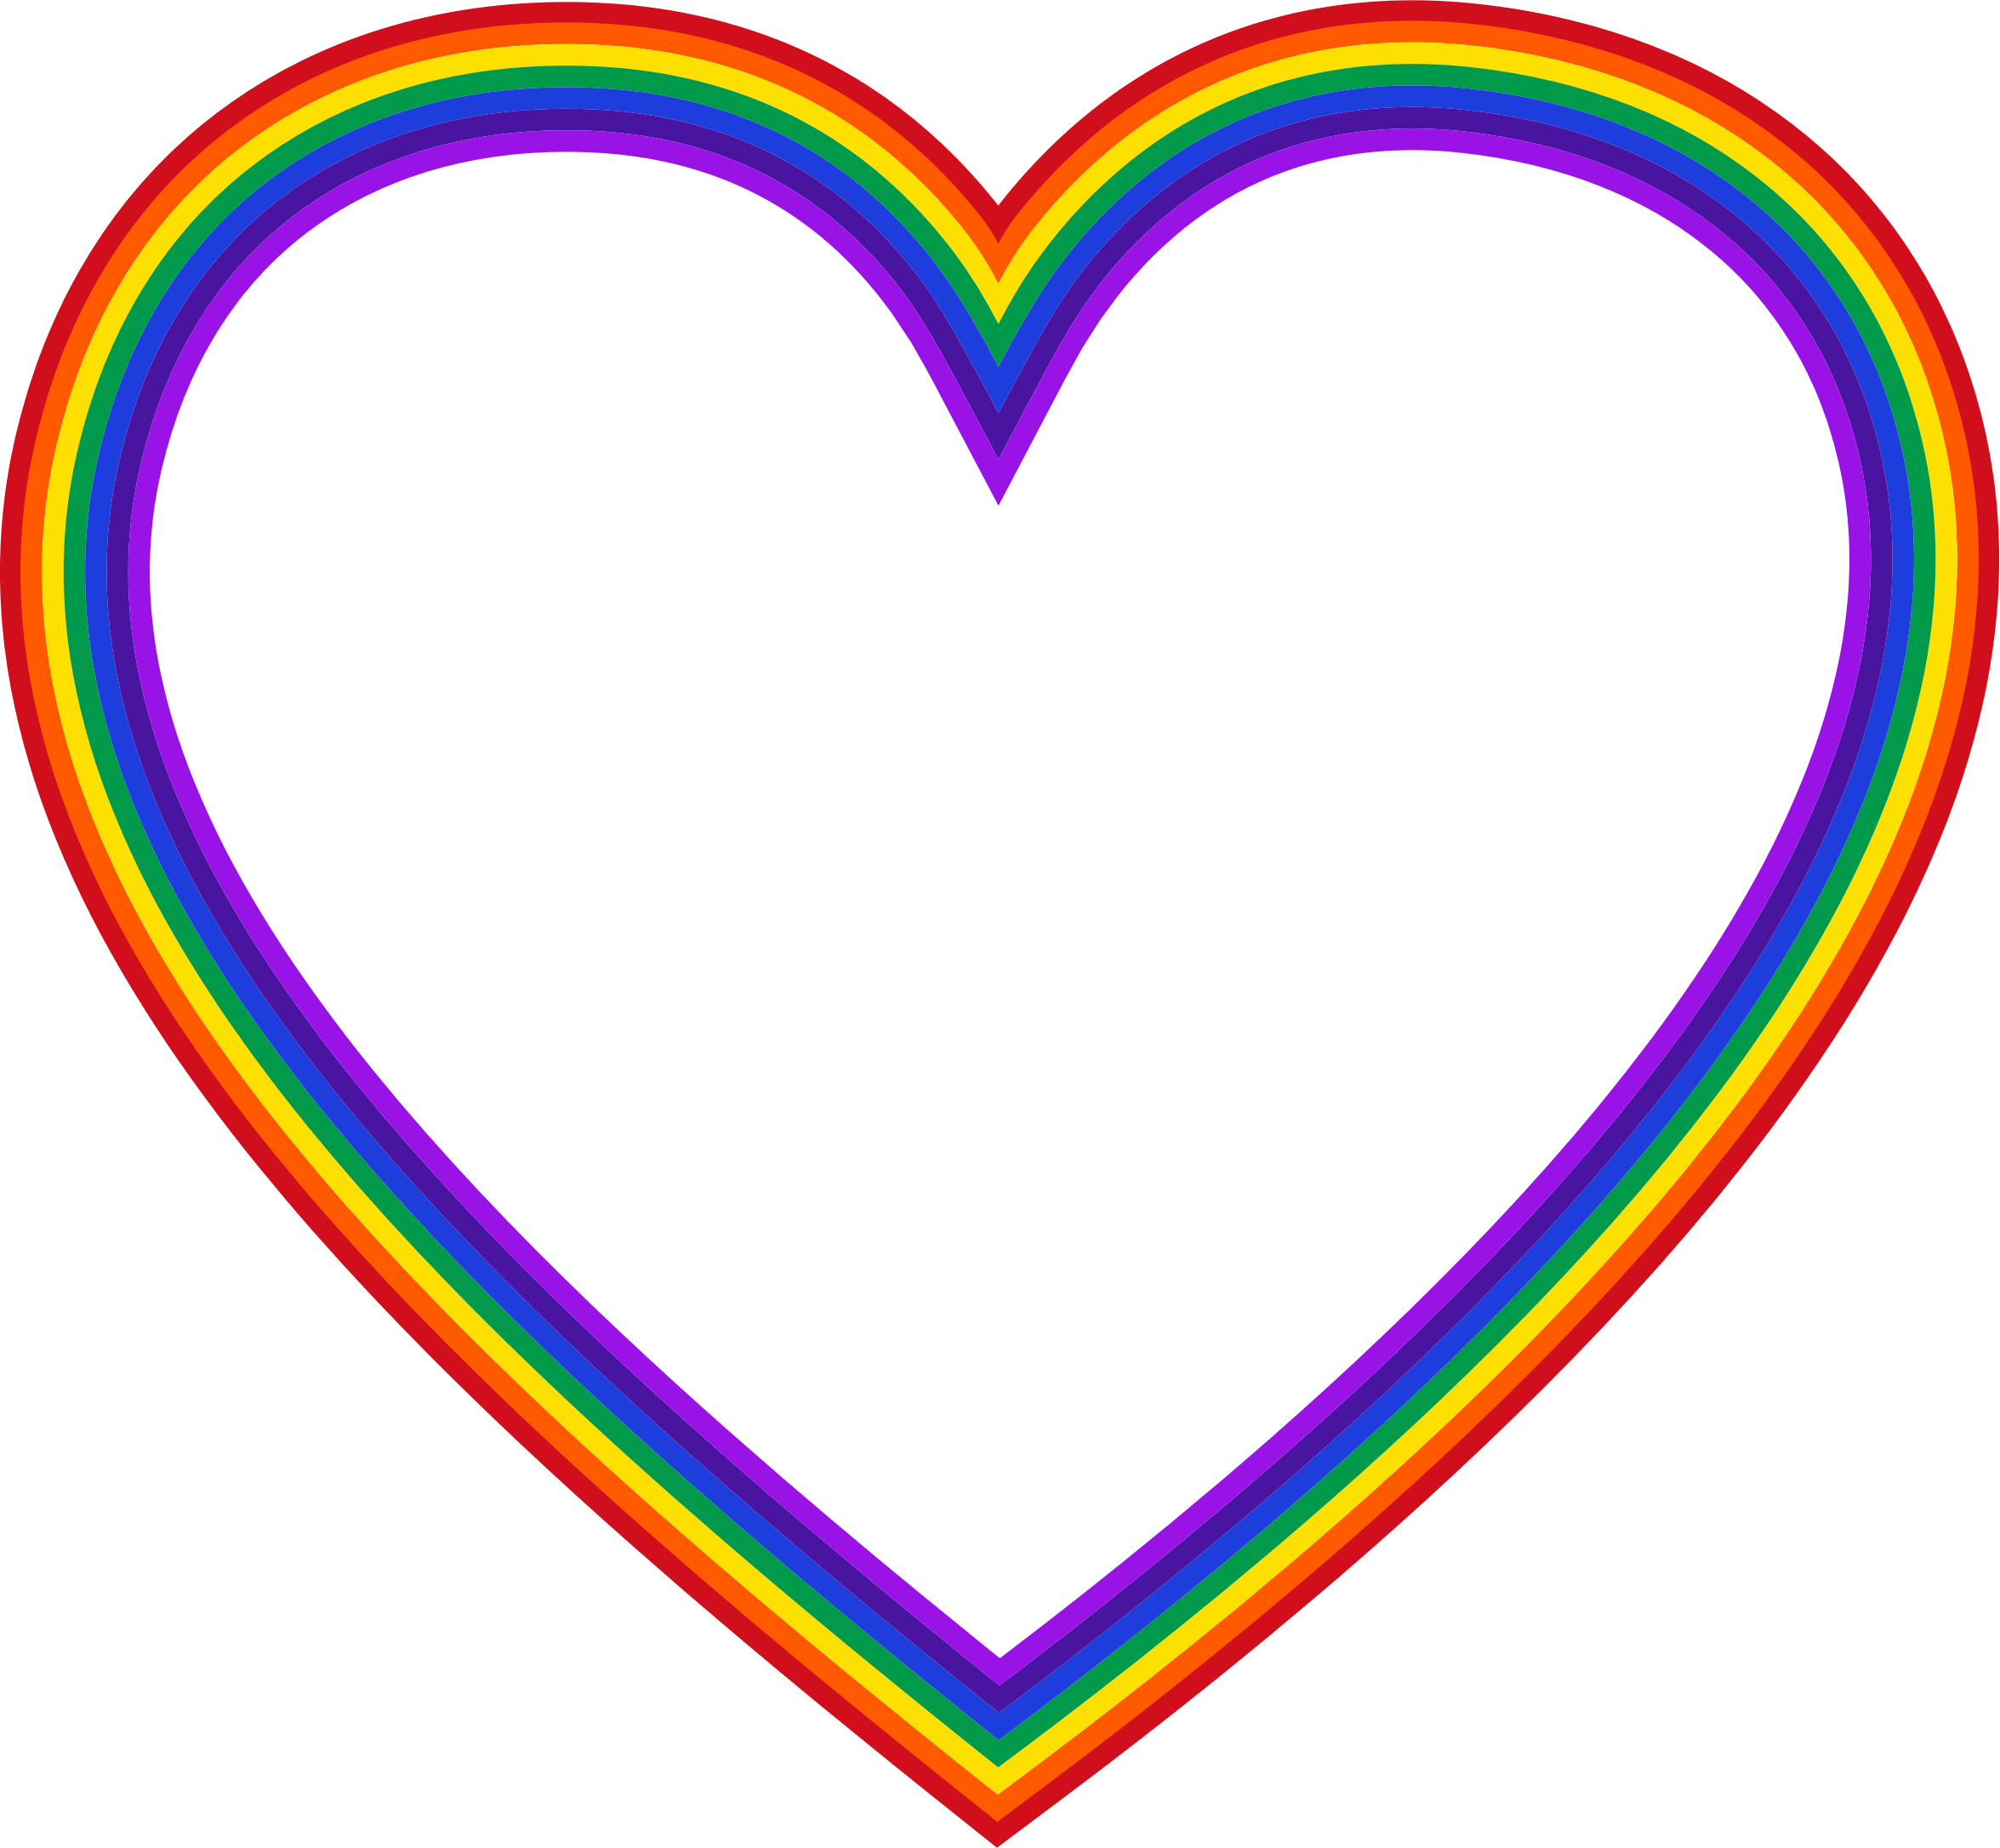 Png Rainbow Heart Frame Outline